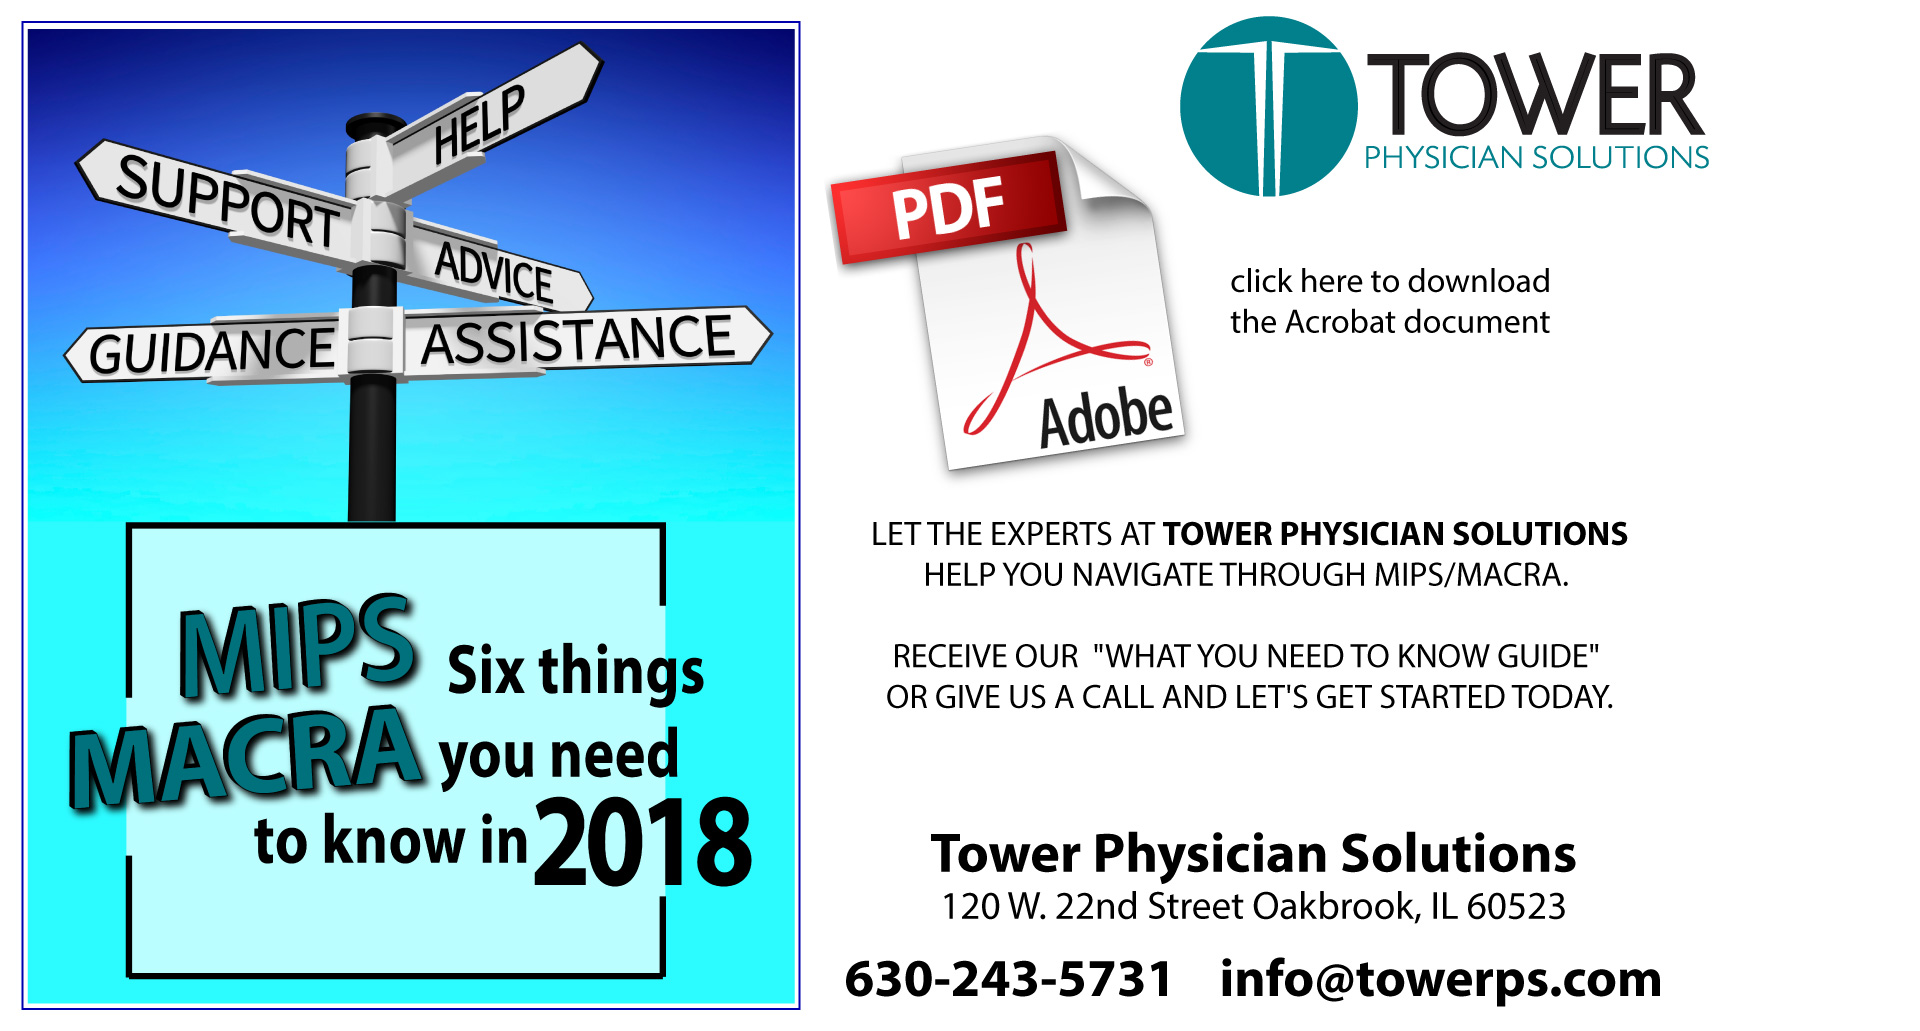 Tower Physician Solutions Nephrology Medical Practice Management MIPS MACRA2017